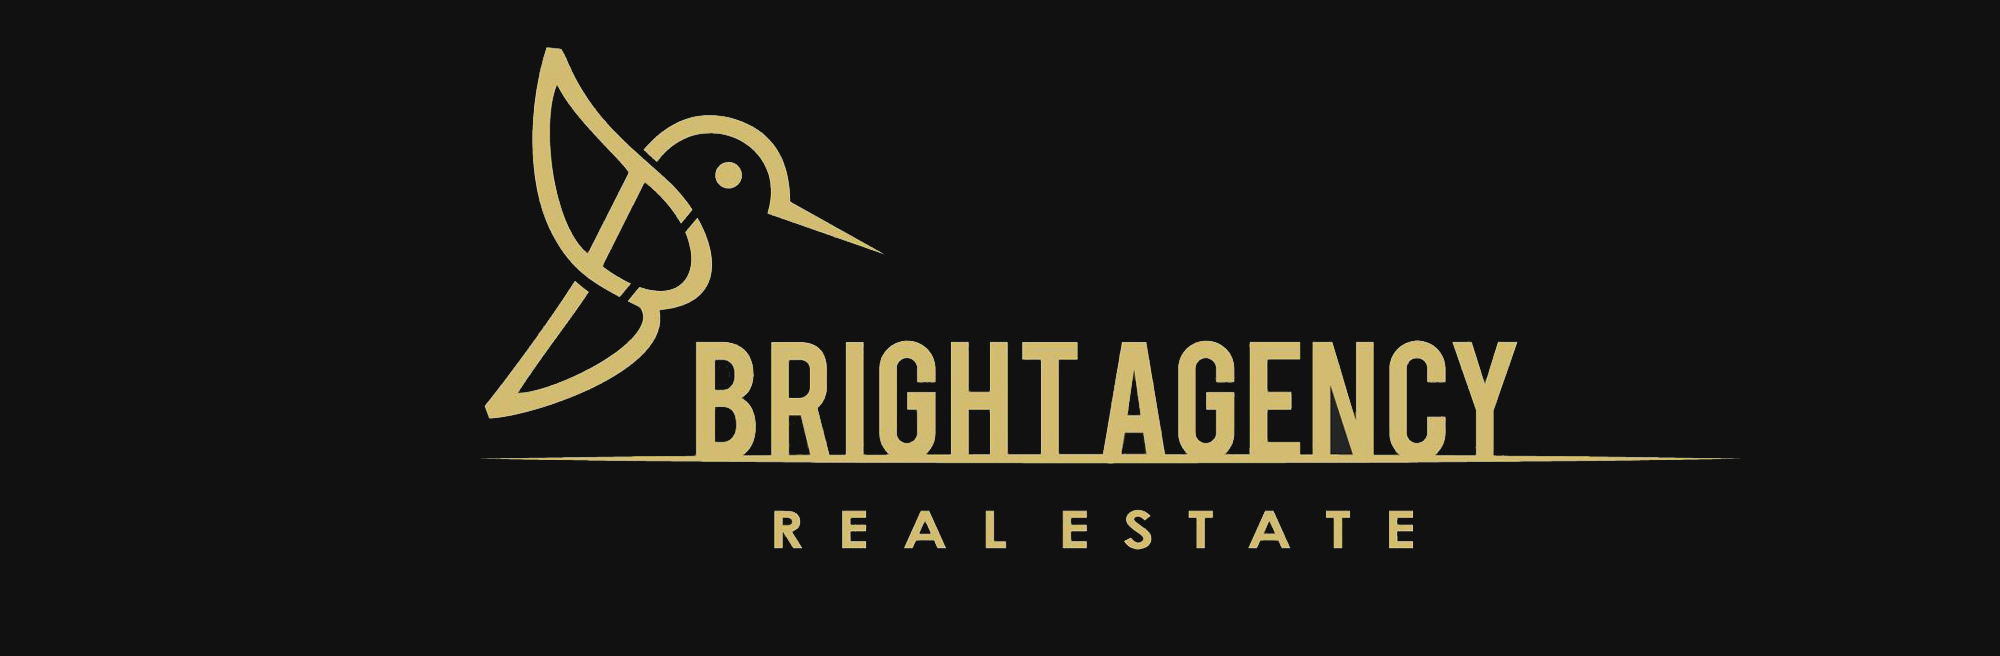 Bright Agency Real Estate